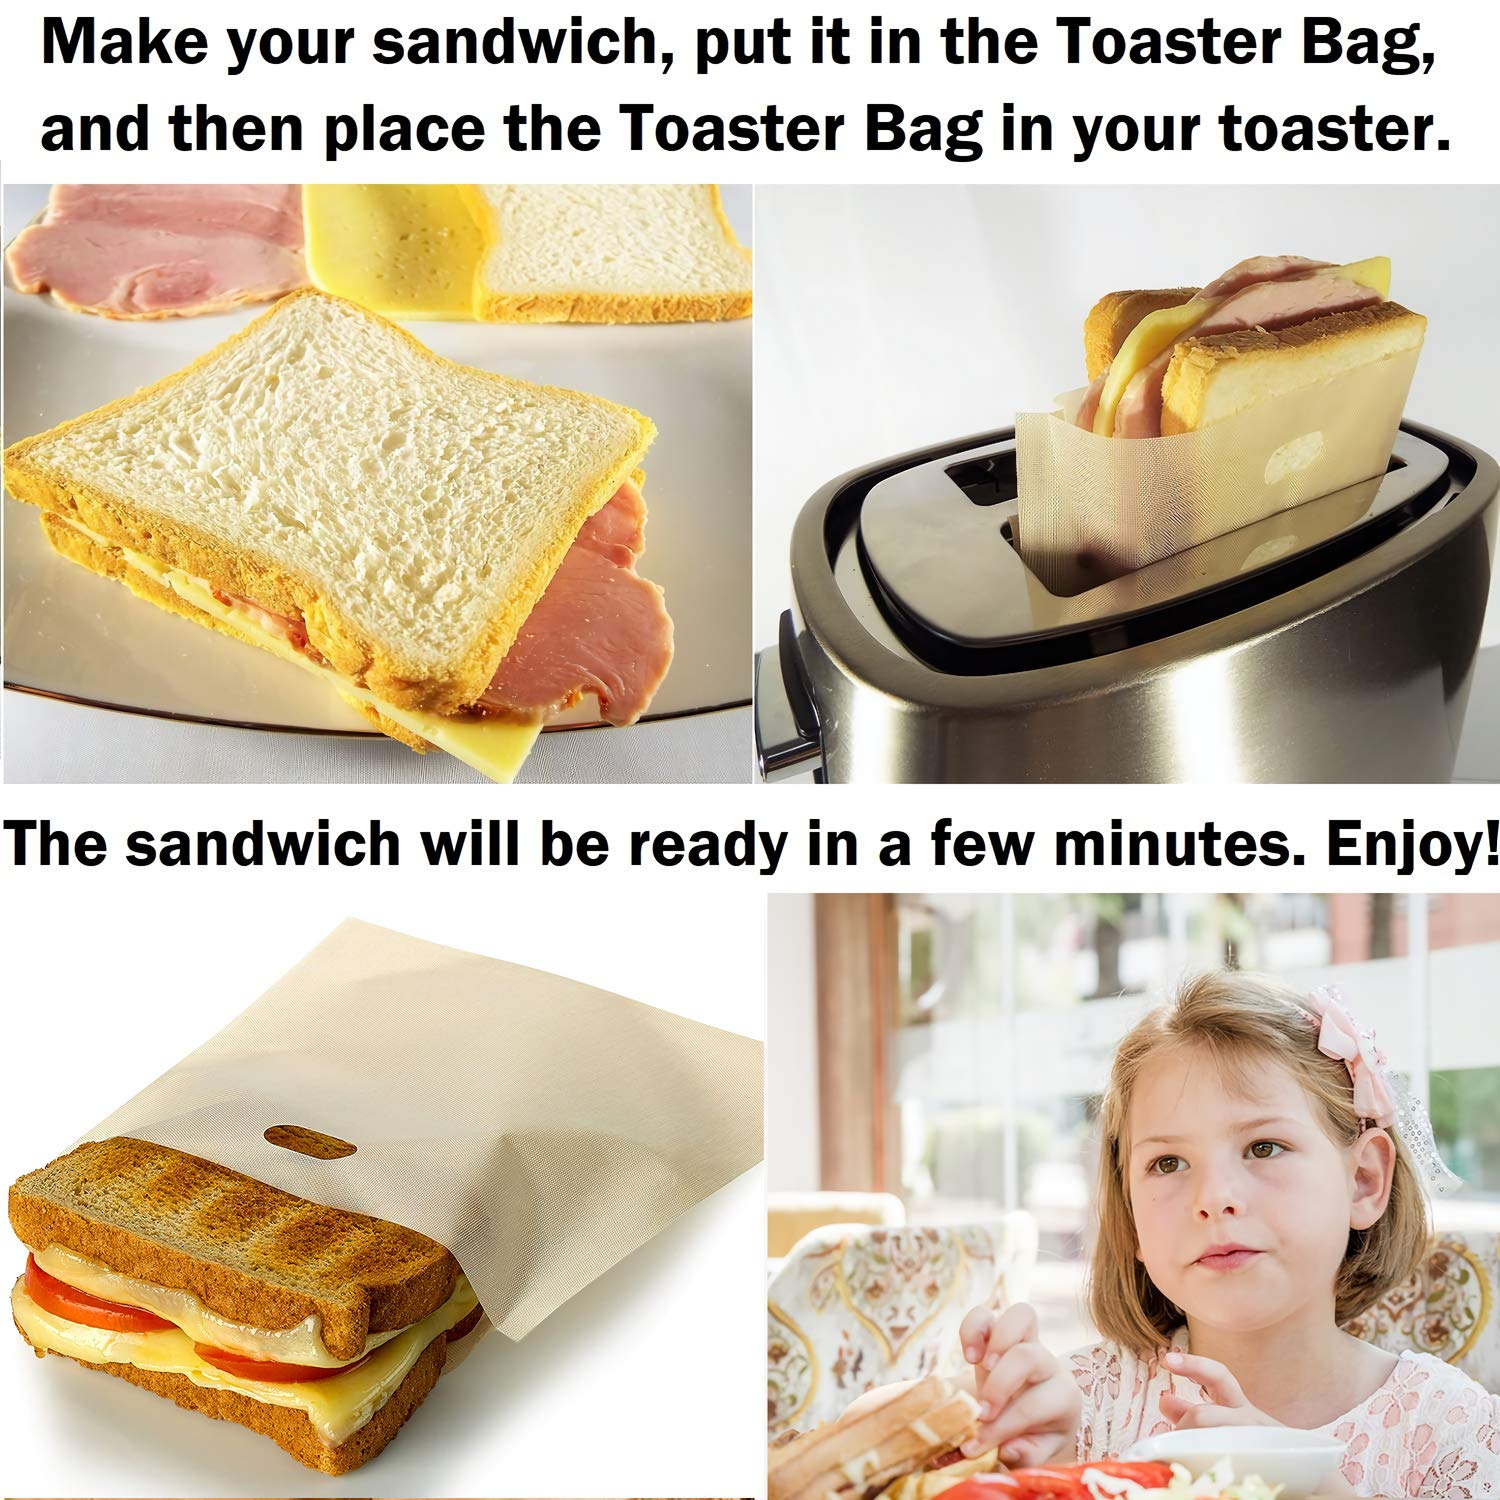 Non Stick Toaster Grilled Cheese Bags Reusable and Heat Resistant Easy to Clean, Gluten Free, FDA Approved, Perfect for Sandwiches, Chicken, Nuggets, Panini and Garlic Toasts - 10 Pcs by Famebird (Image #1)